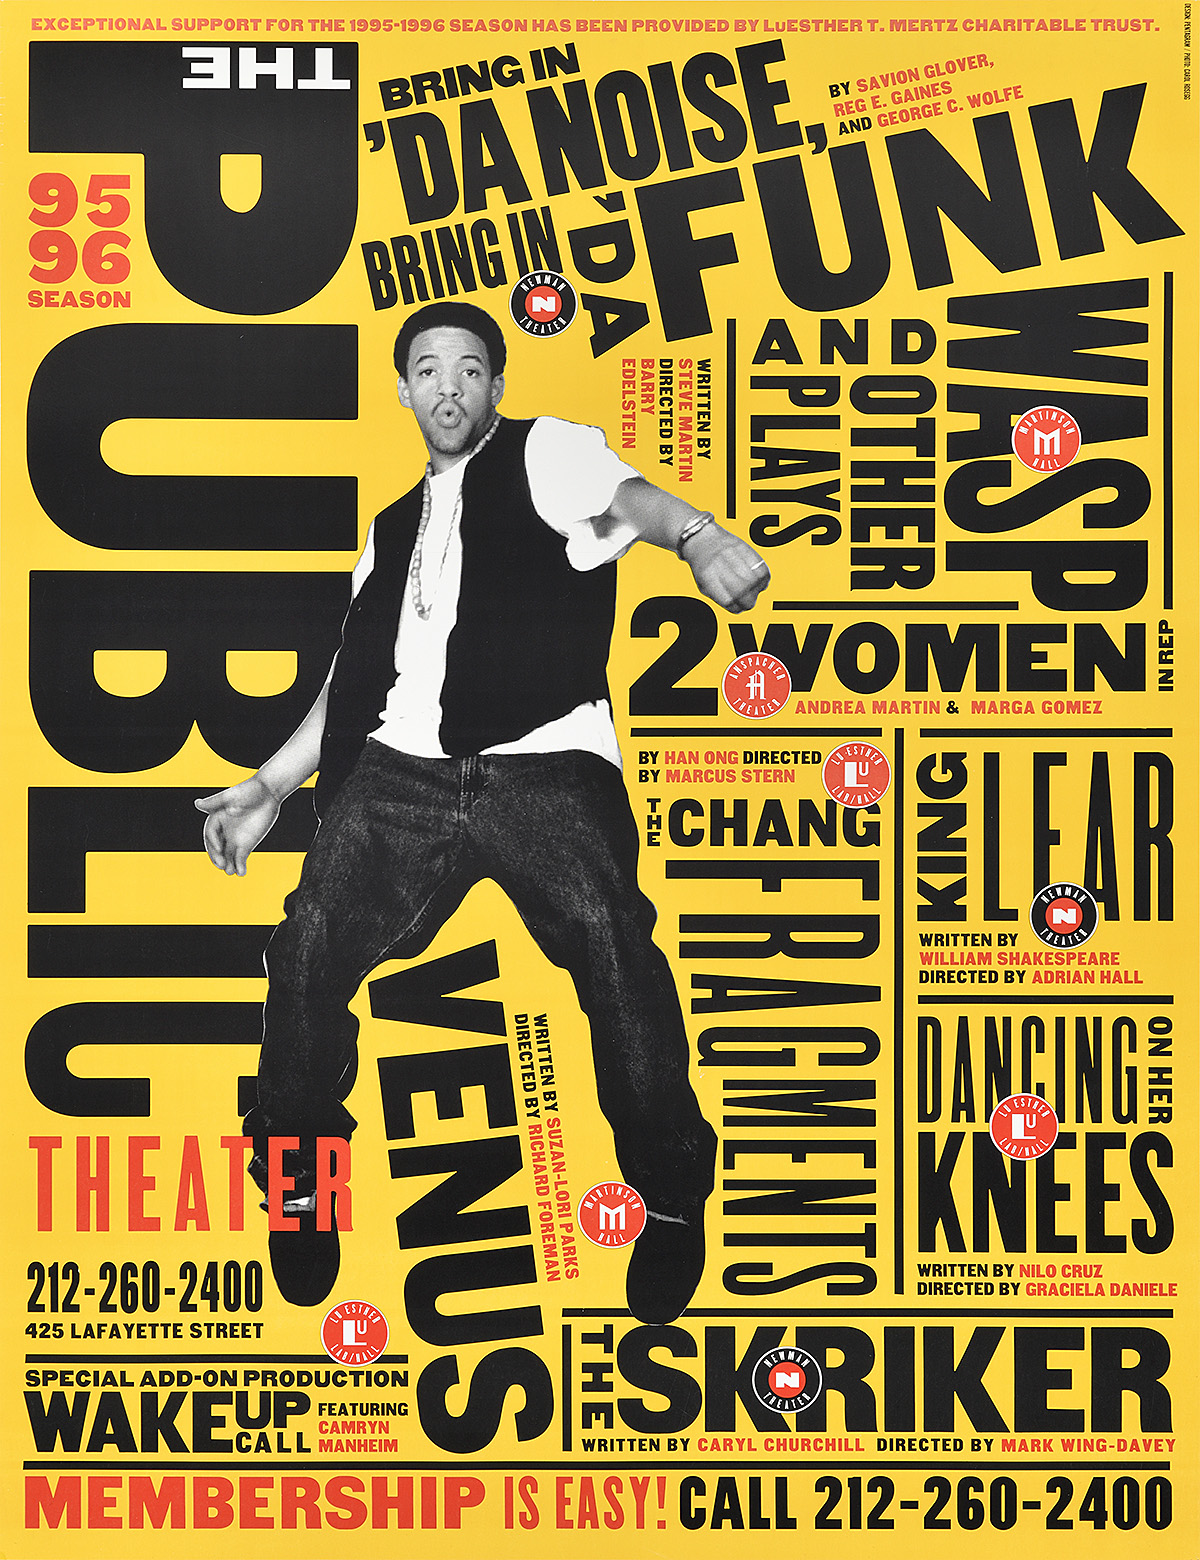 collage poster of a man balancing on his toes and black and red text packed tightly in various positions on a yellow background